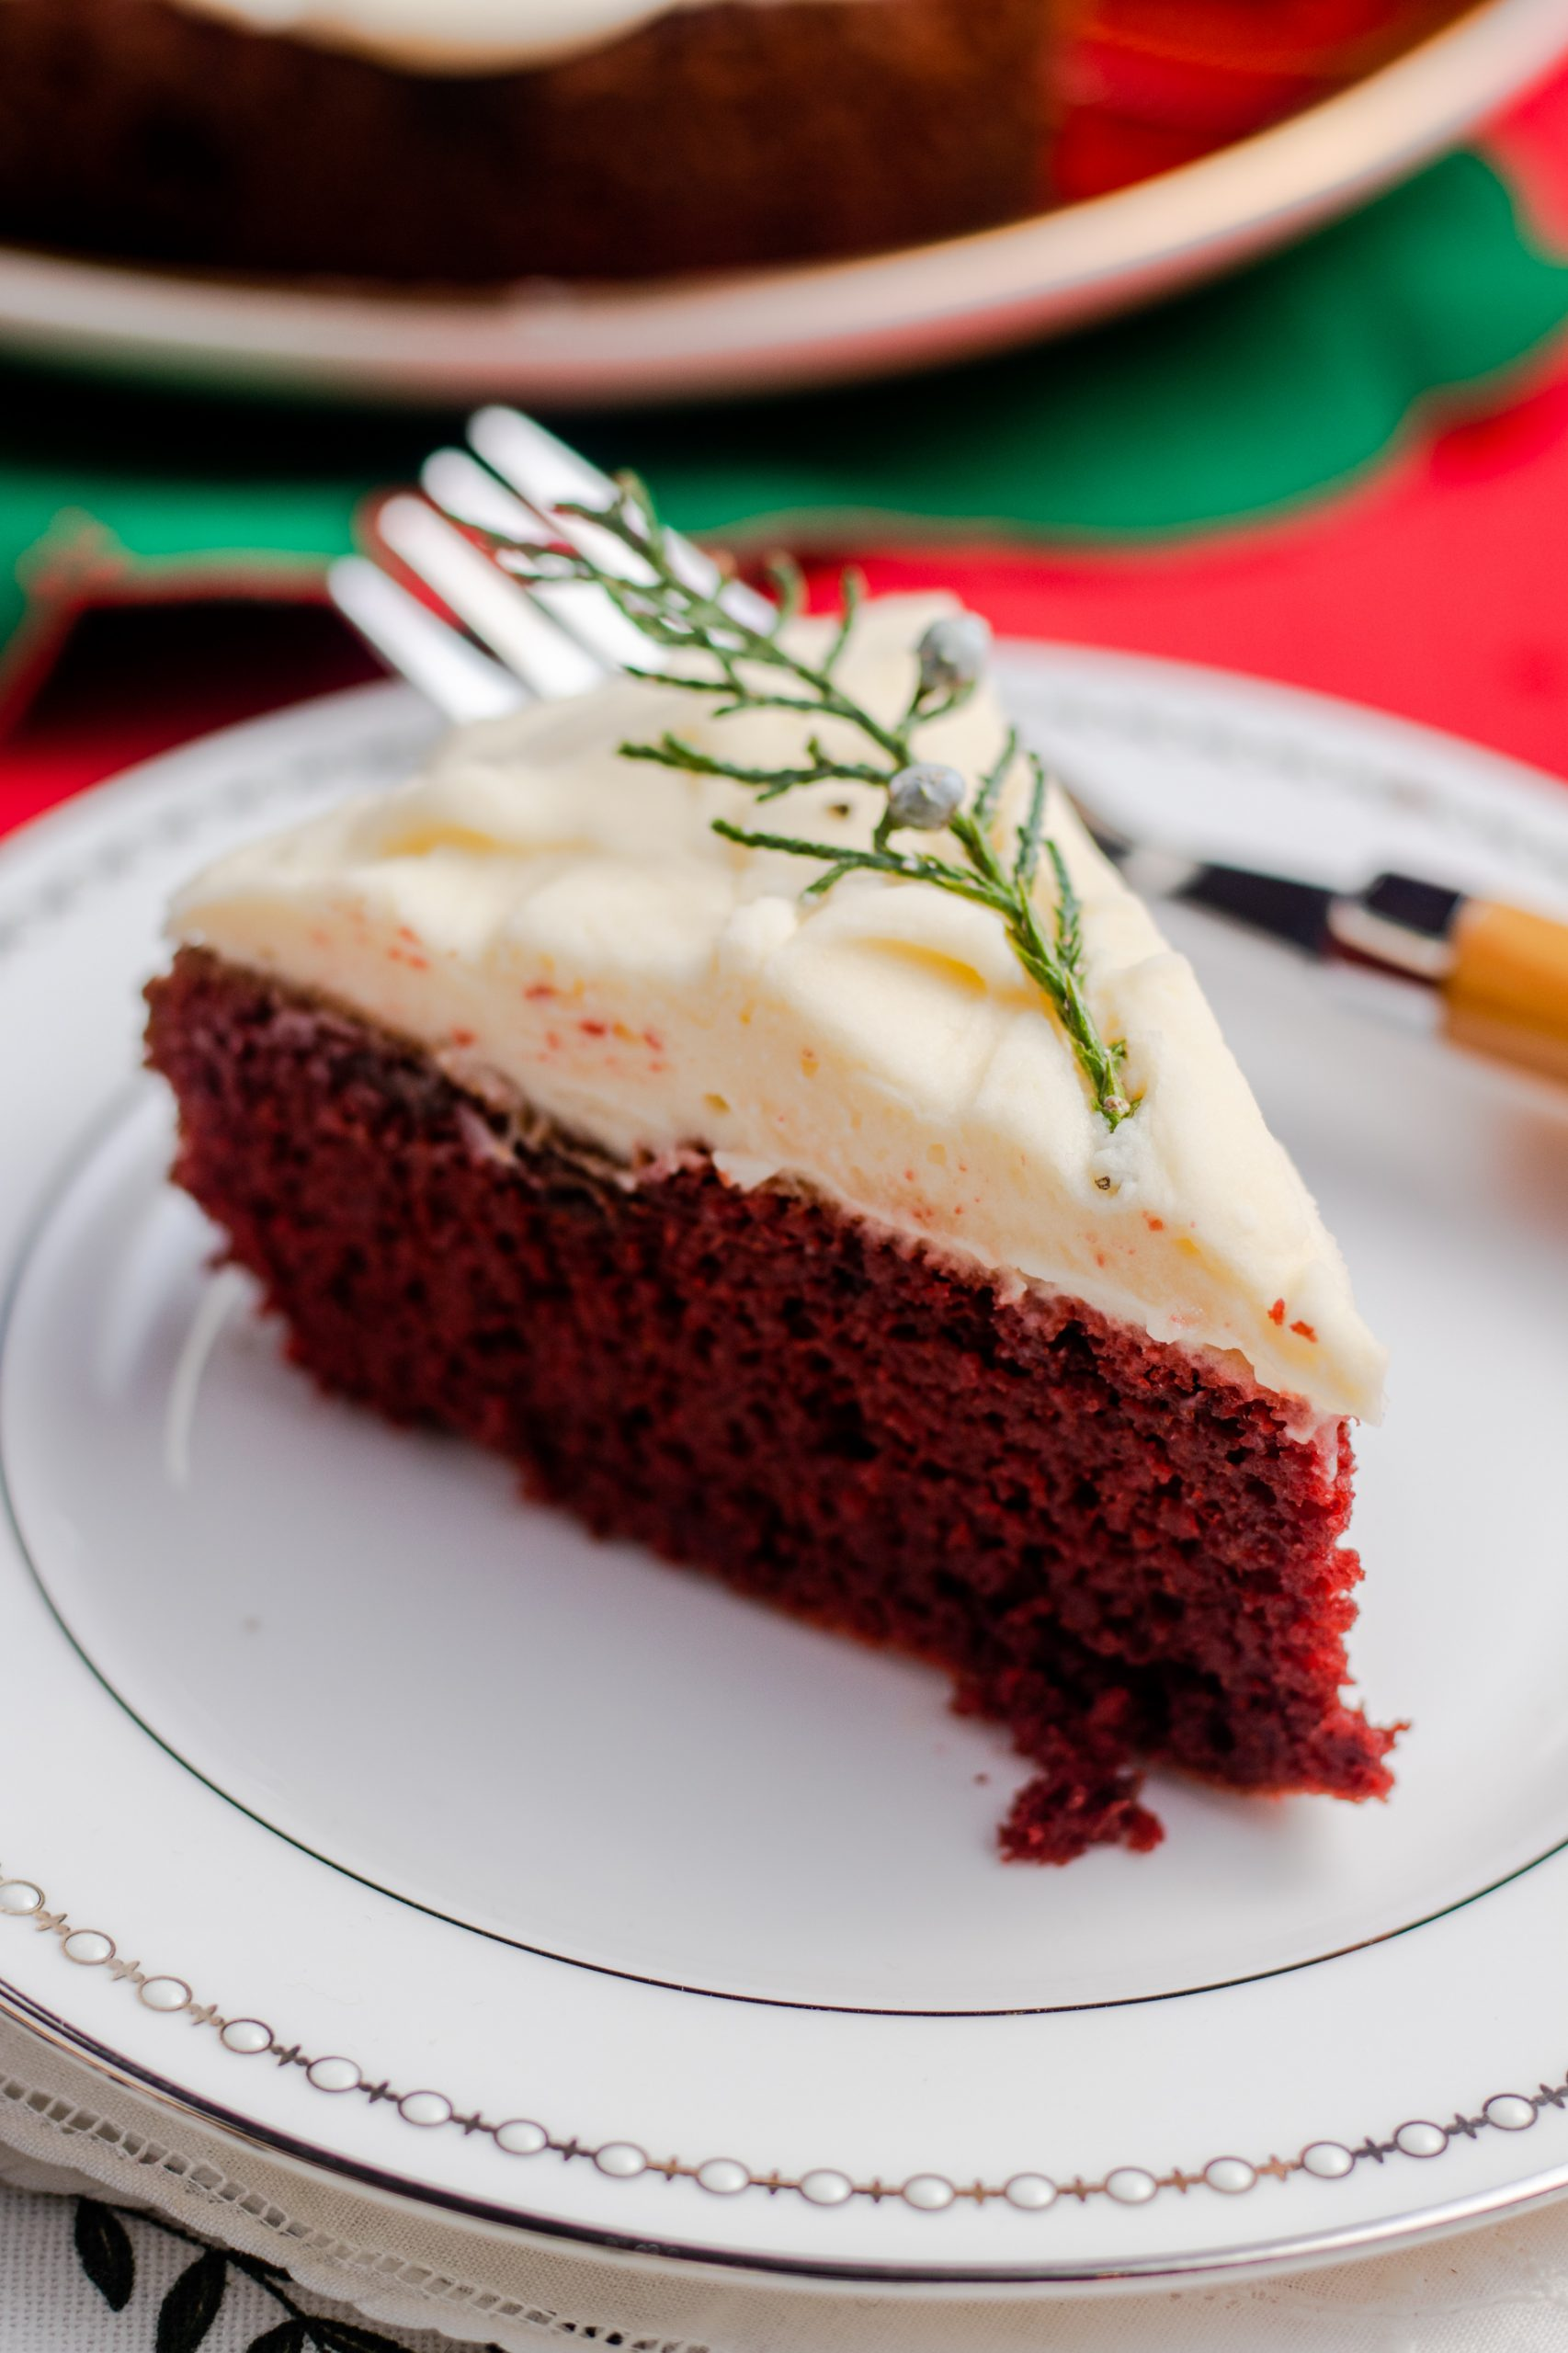 Slice of keto red velvet cake and cream cheese frosting adorned with fresh a juniper stem.